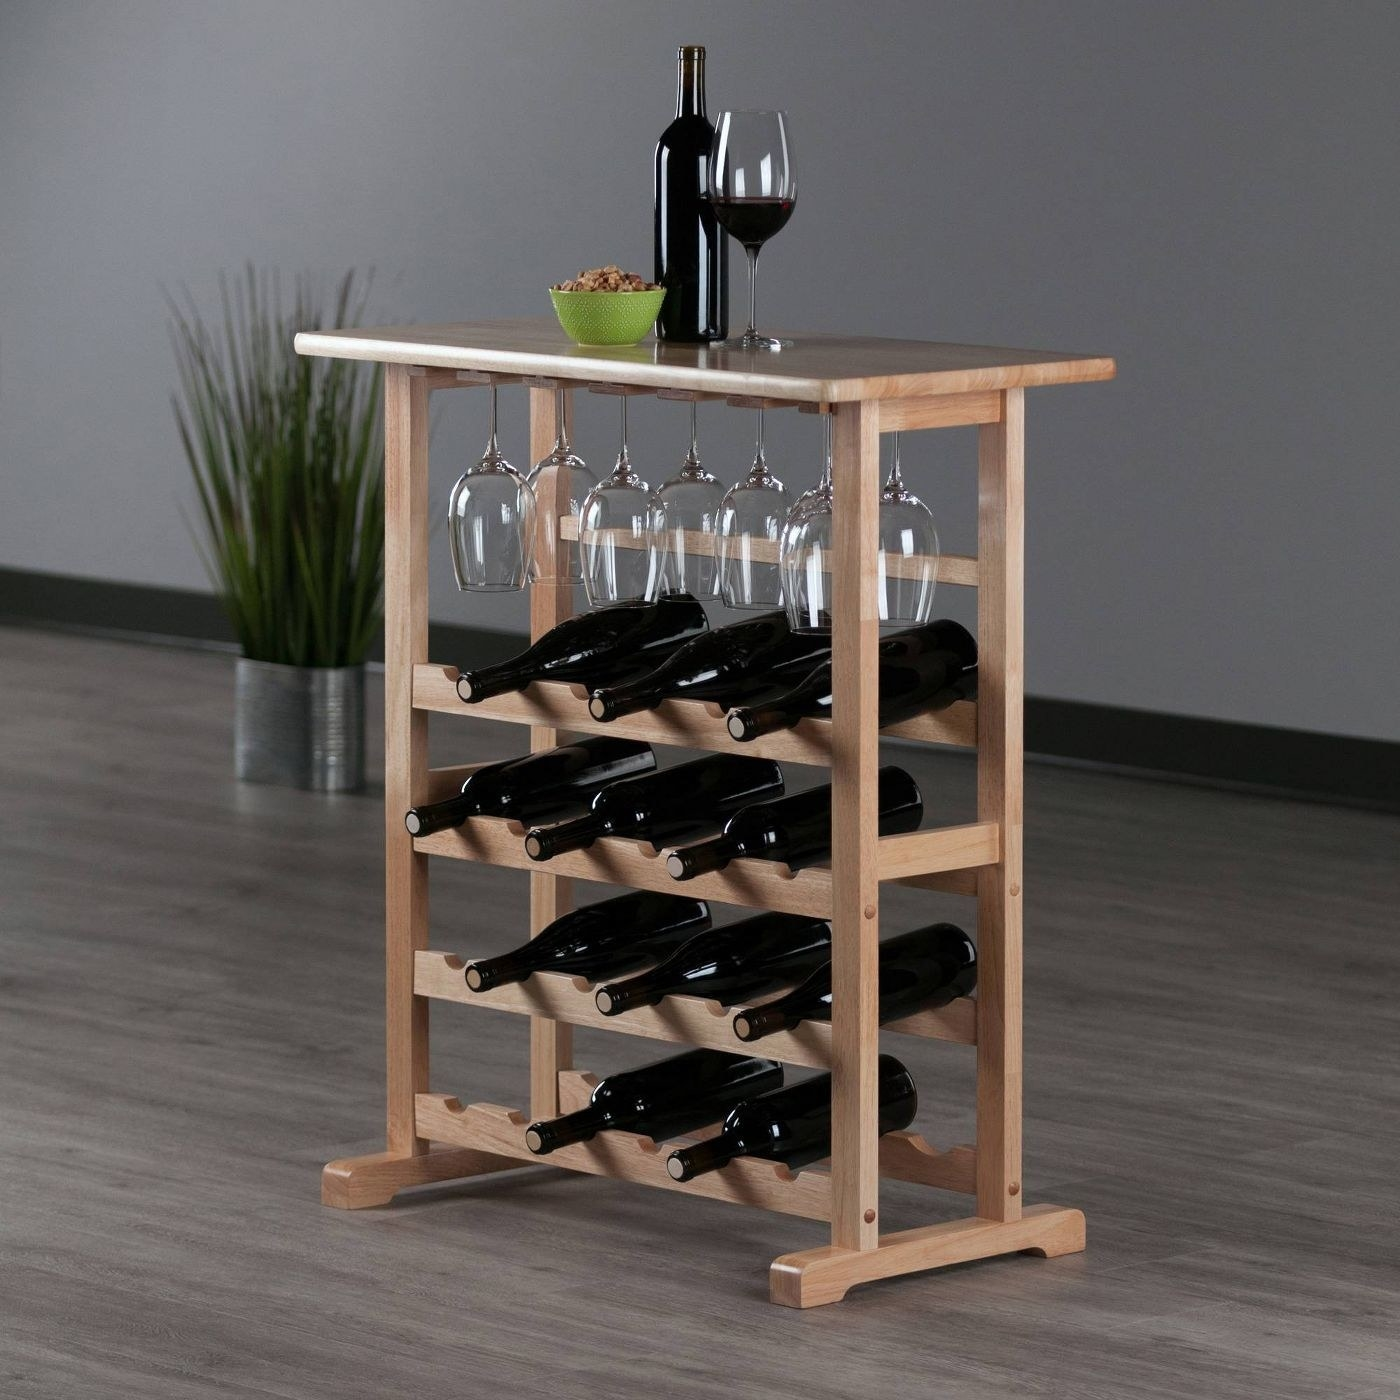 A wooden wine rack in a home